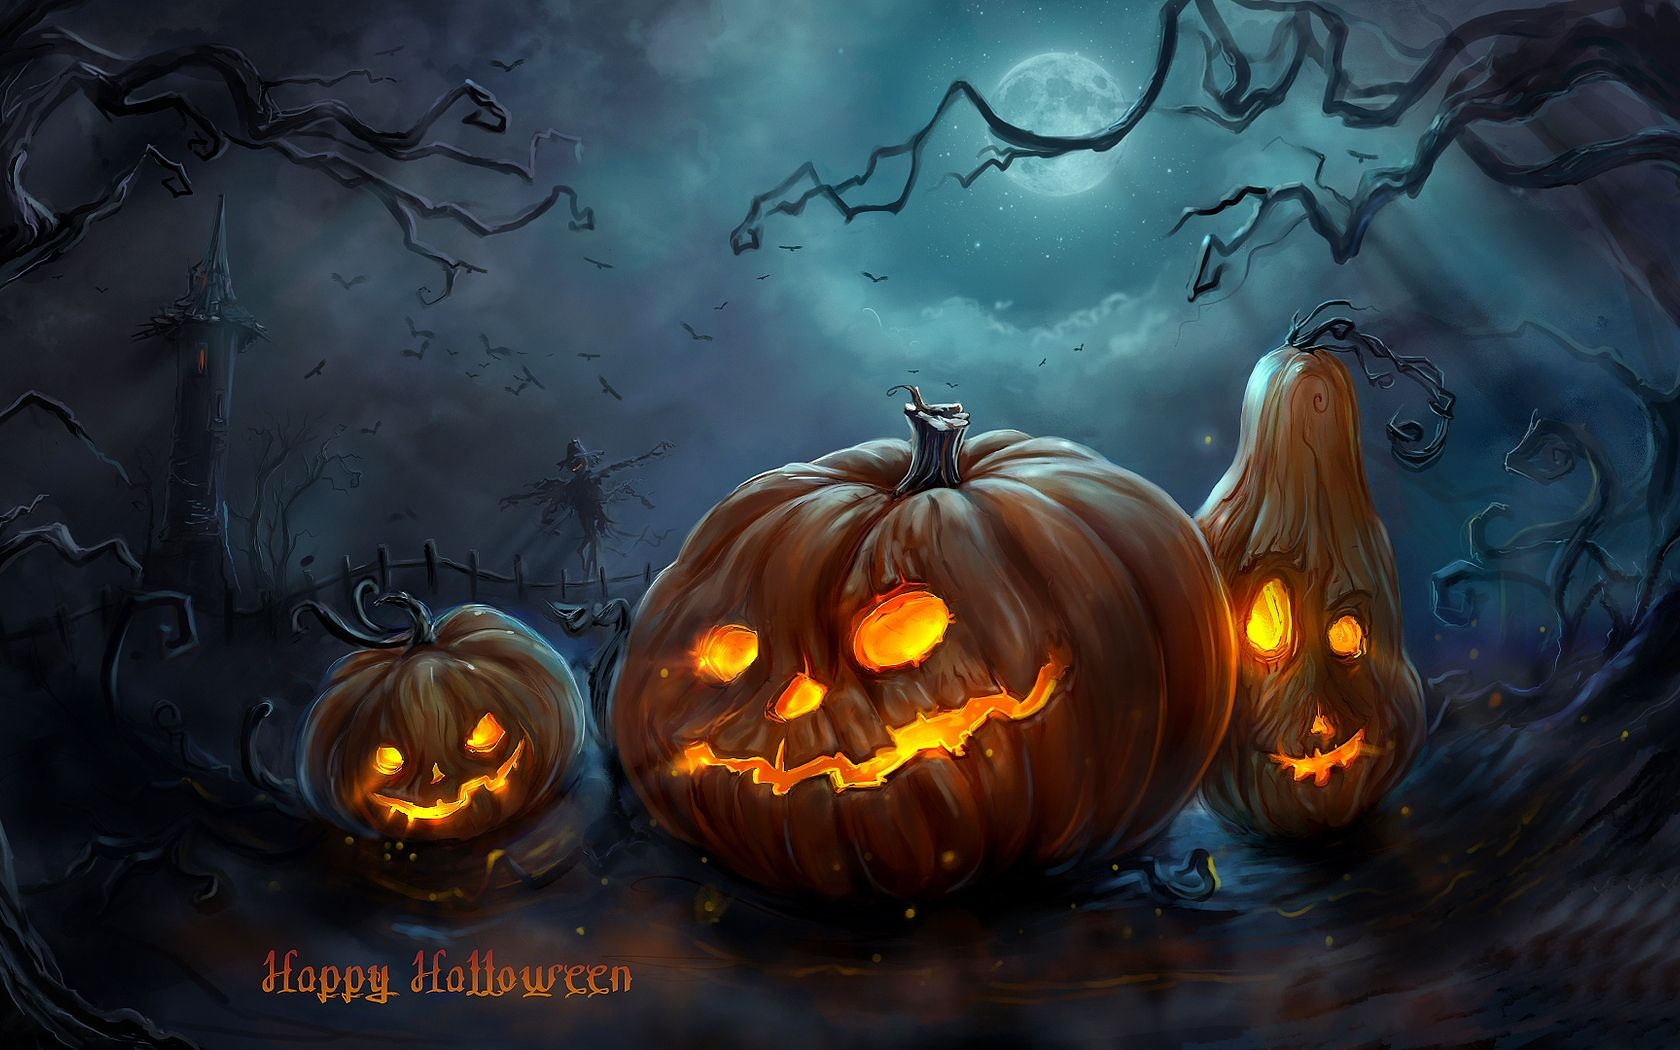 happy halloween wishes quotes, sayings, messages to share on